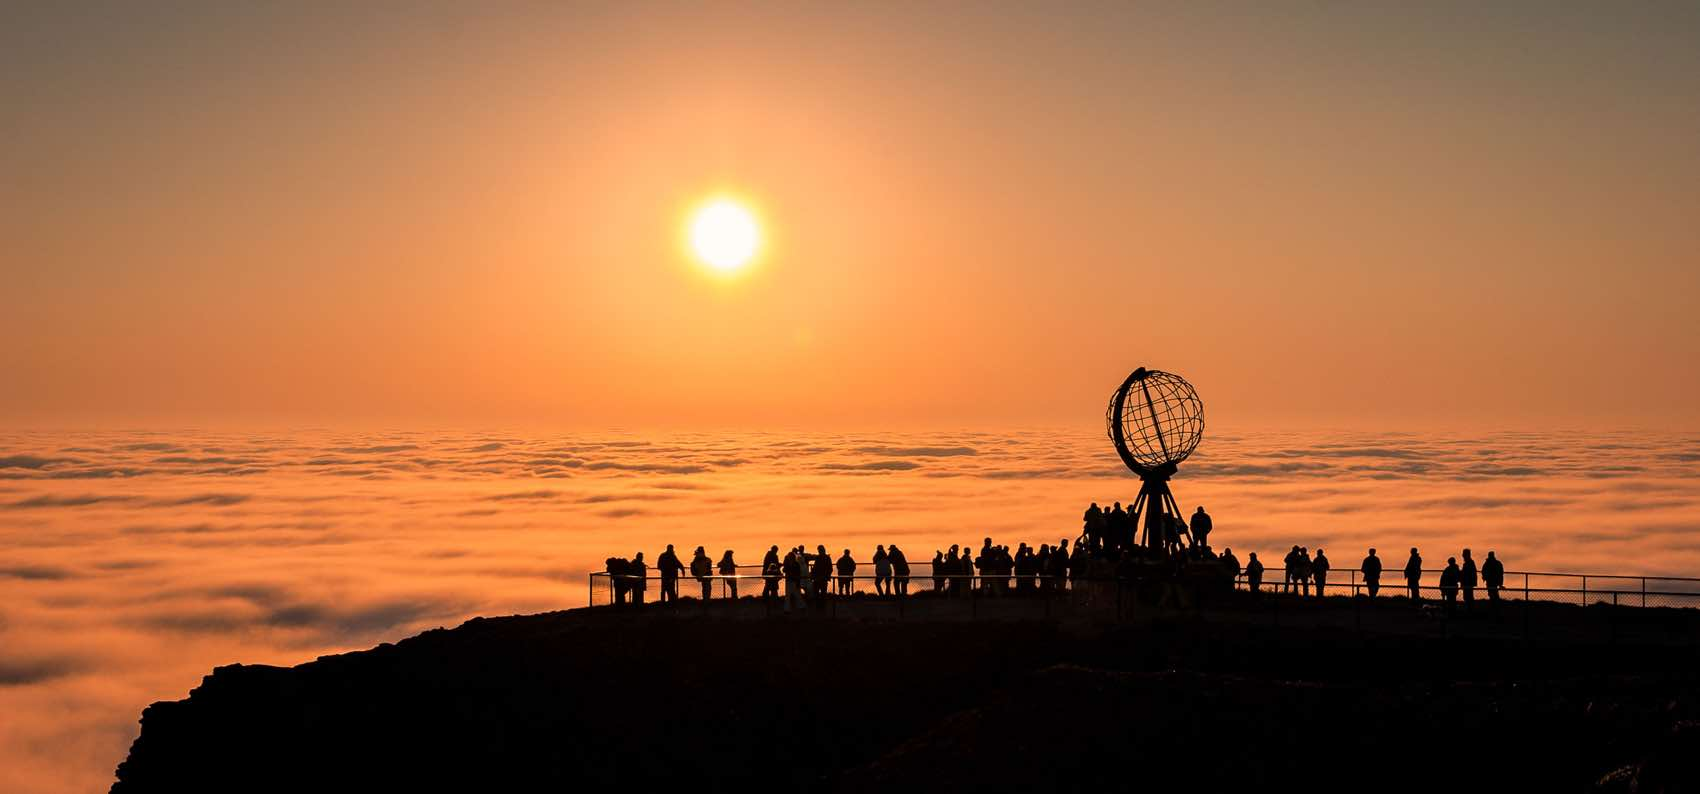 The Midnight Sun, the crowd at North Cape, the most Northern spot on mainland Europe.